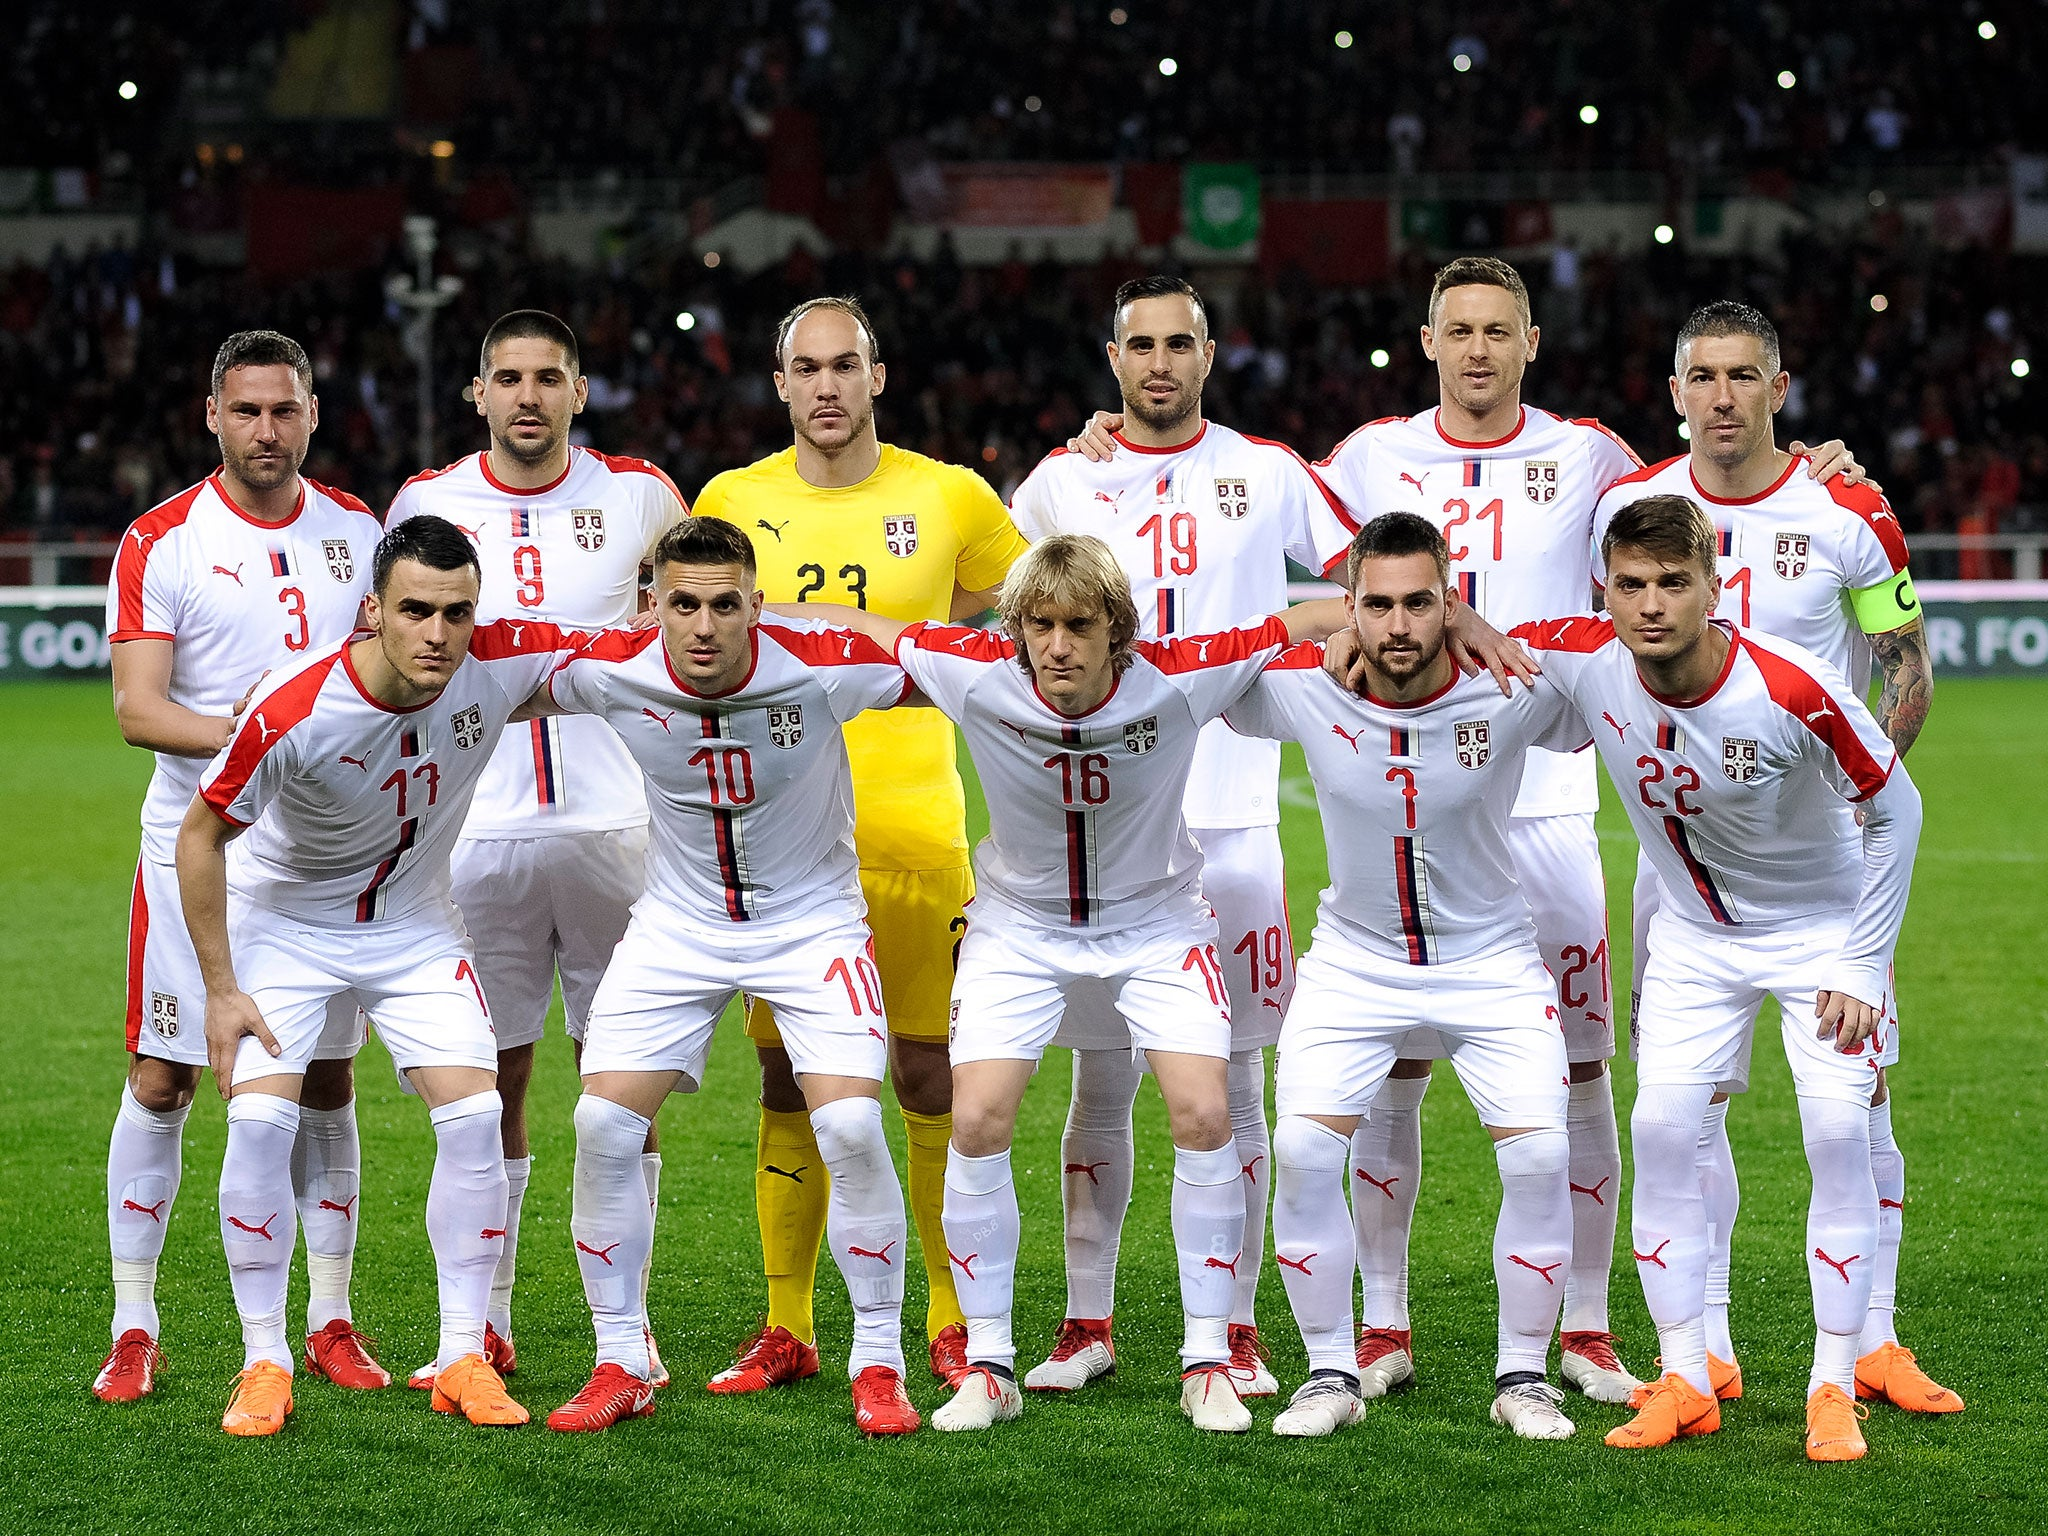 Serbia World Cup squad guide: Full fixtures, group, ones to watch, odds and more